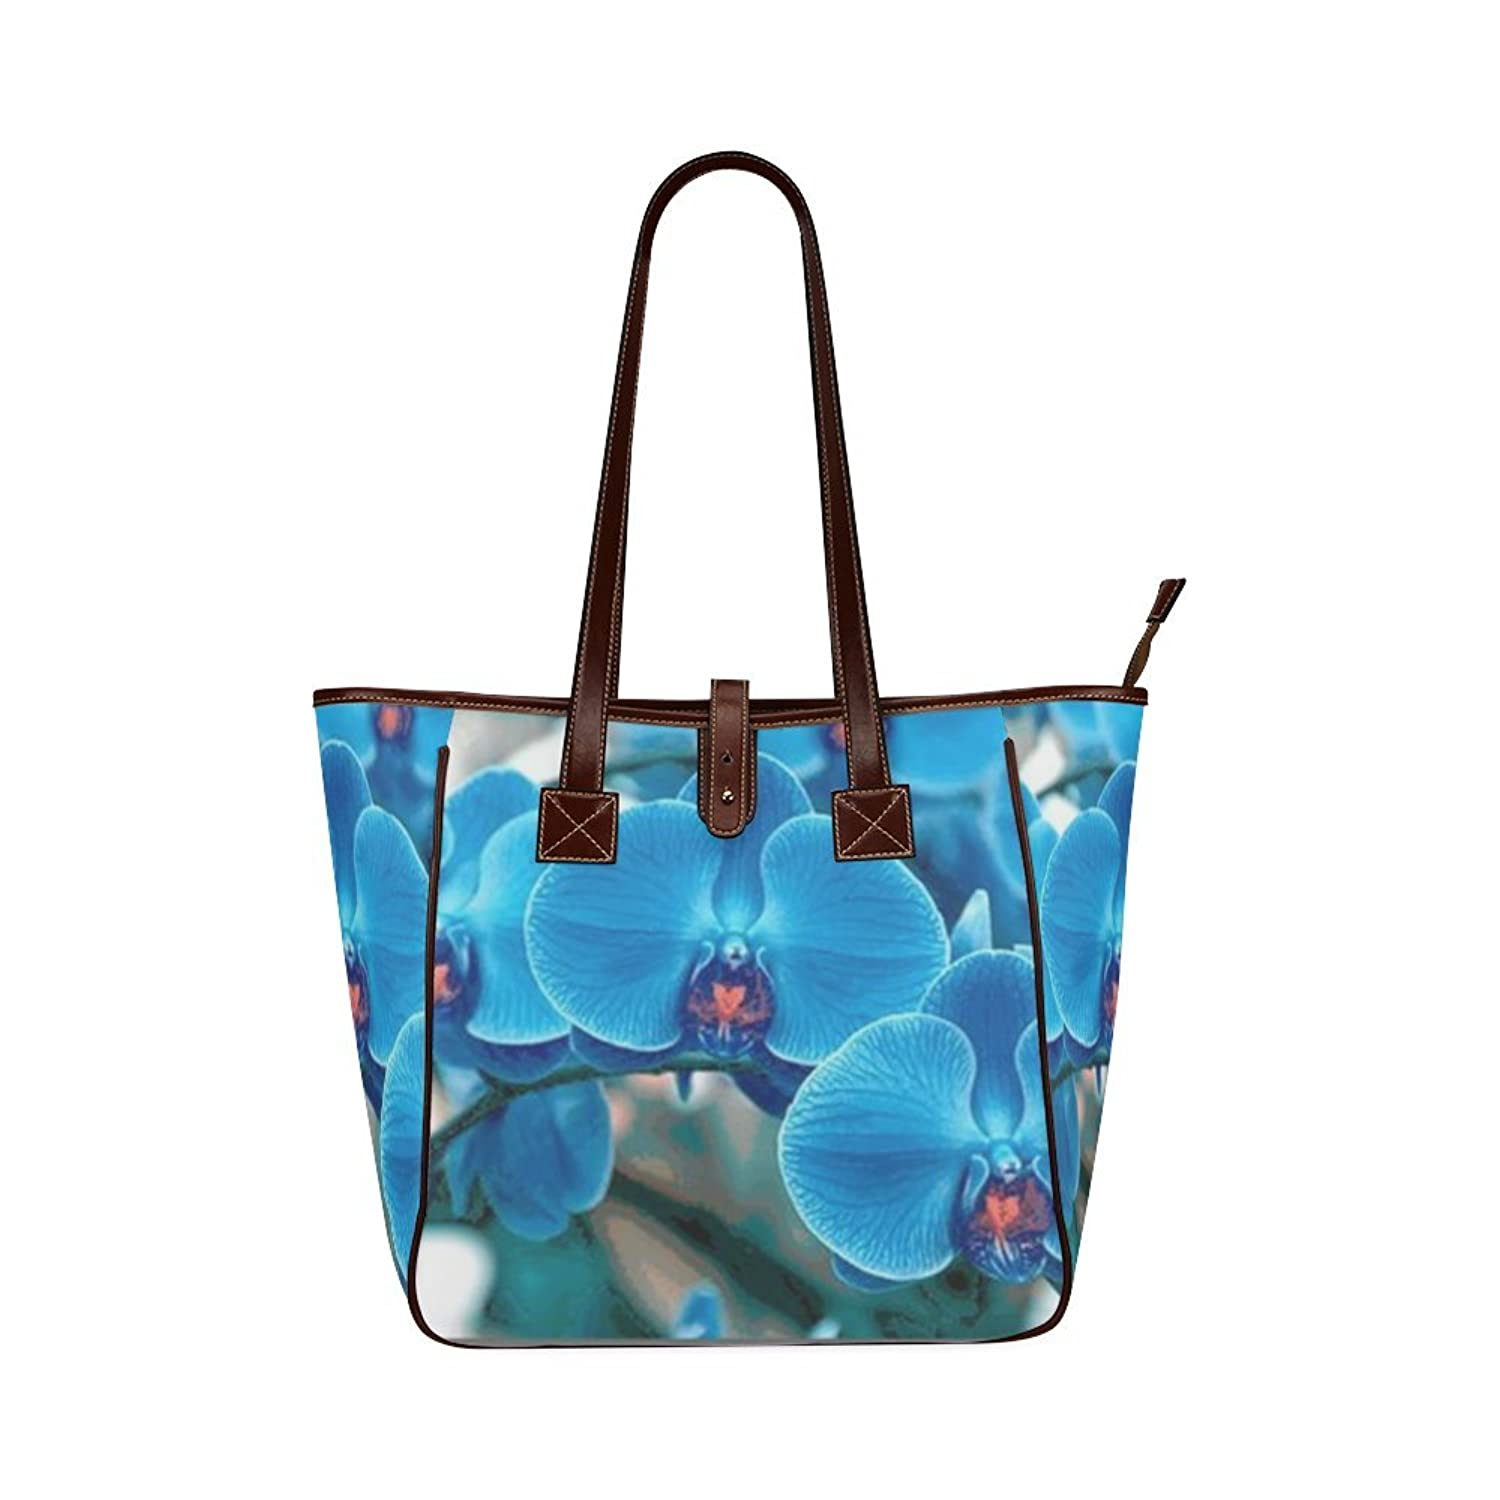 Custom Beautiful Flowers Orchid Classic Leather Tote Bag/Handbag/Shoulder Bag for Women Girls By Boom~Shakalaka